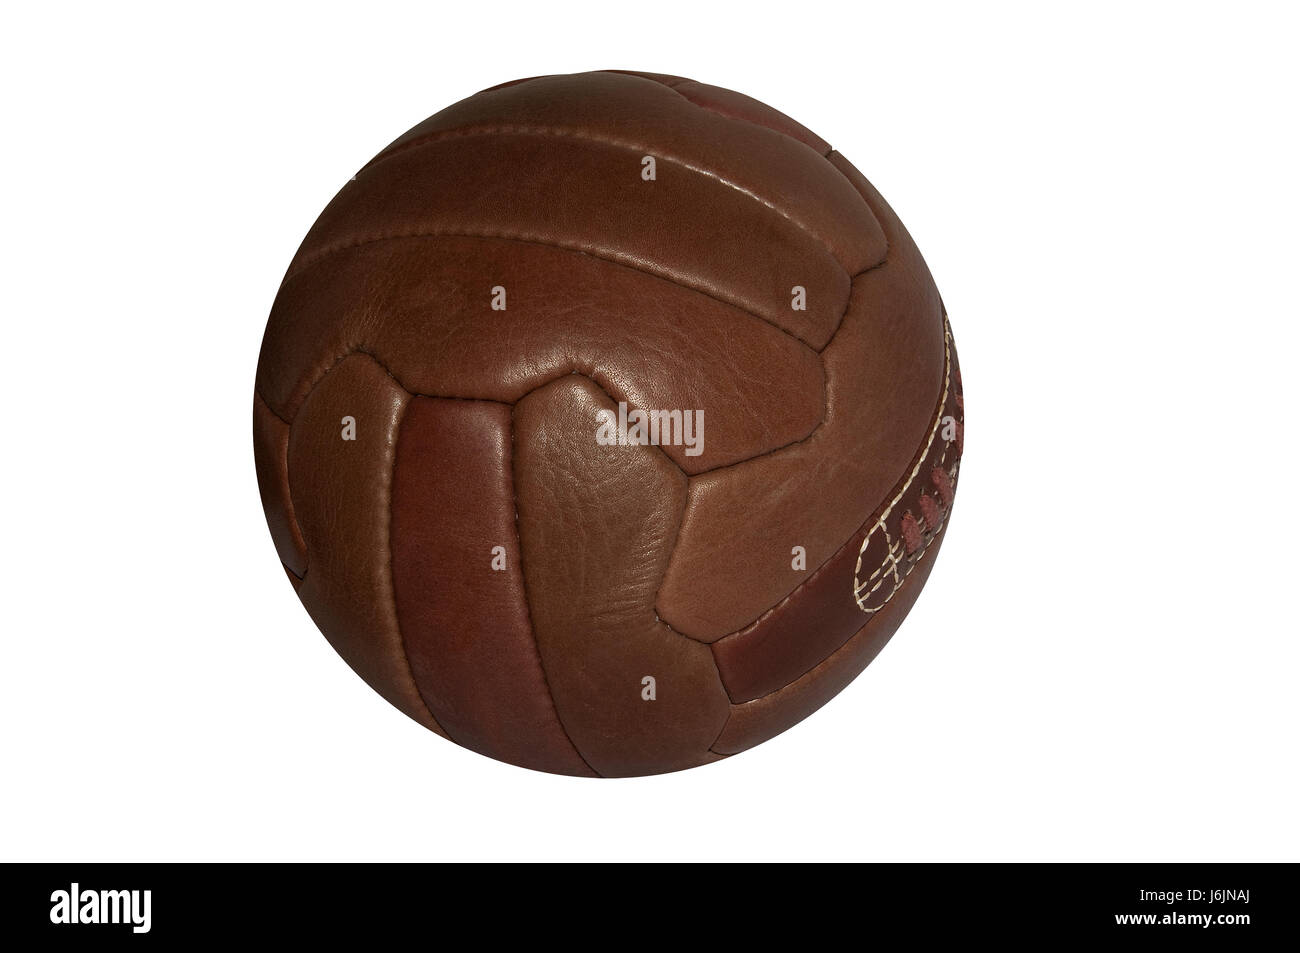 ball classical old ball brown brownish brunette leather classical retro old - Stock Image